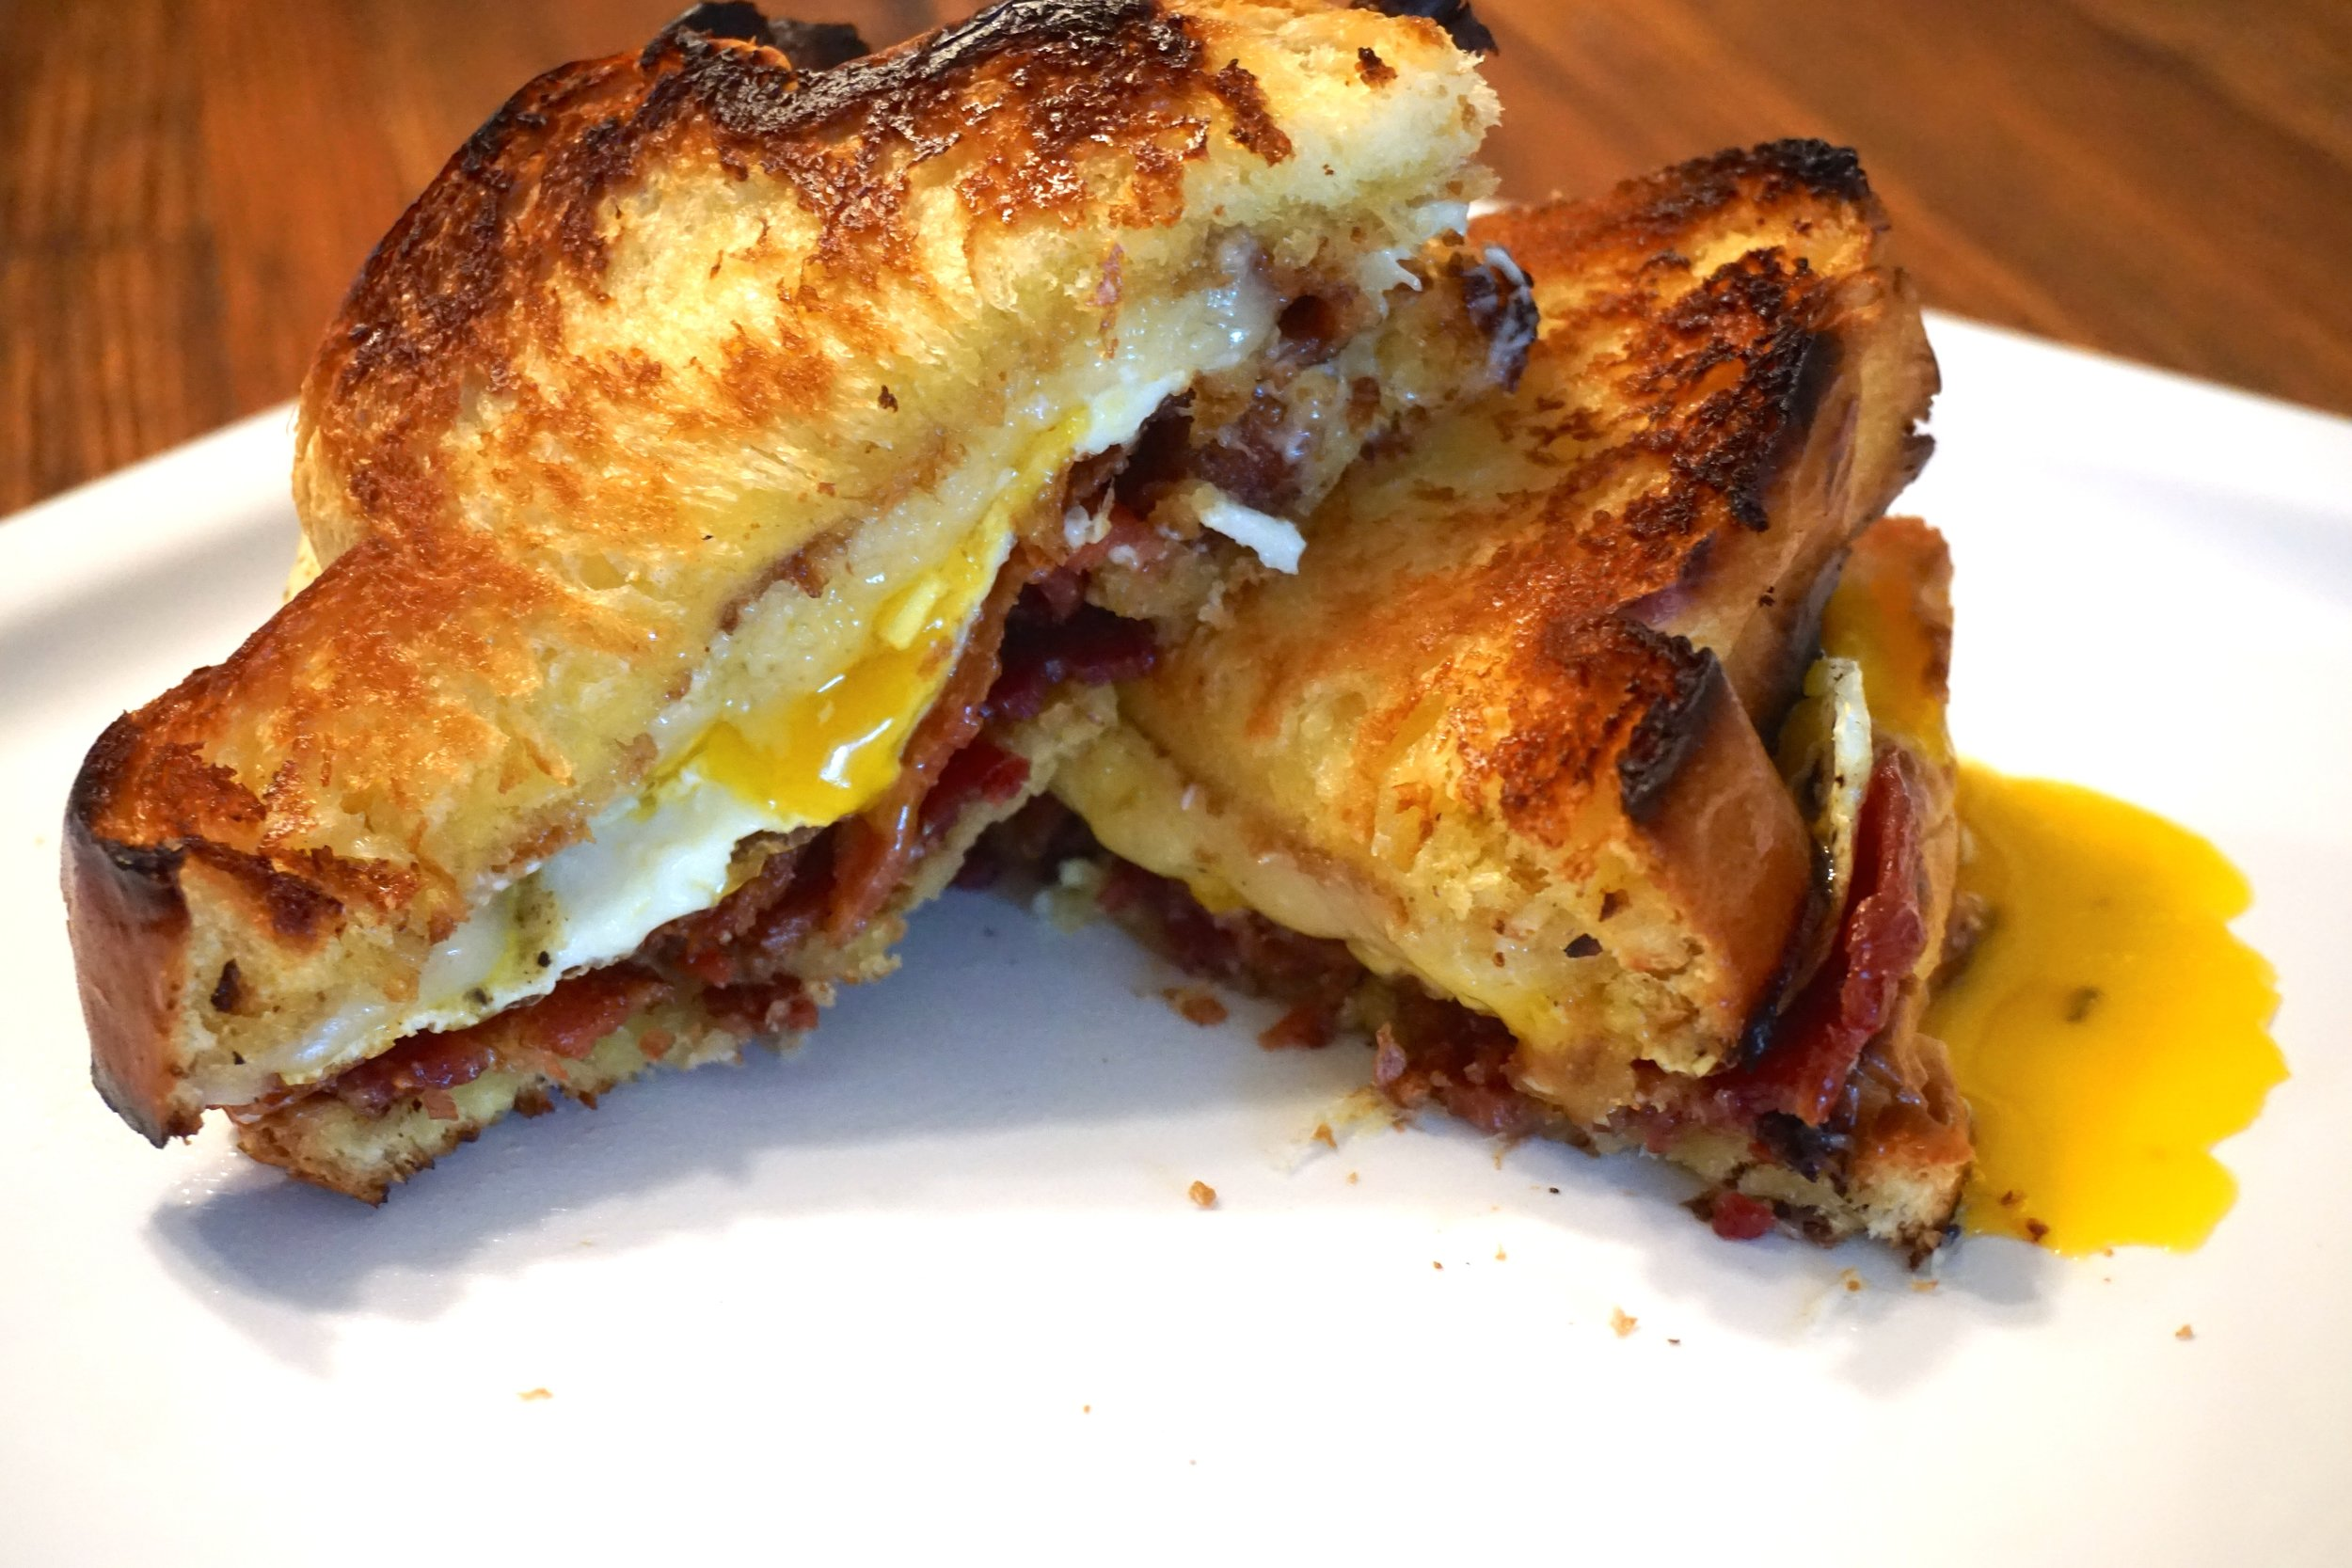 The Best Breakfast Sandwich - This is the most amazing breakfast sandwich you will ever eat. Simple ingredients the are incredible when combined together. Soon to be your favorite anytime